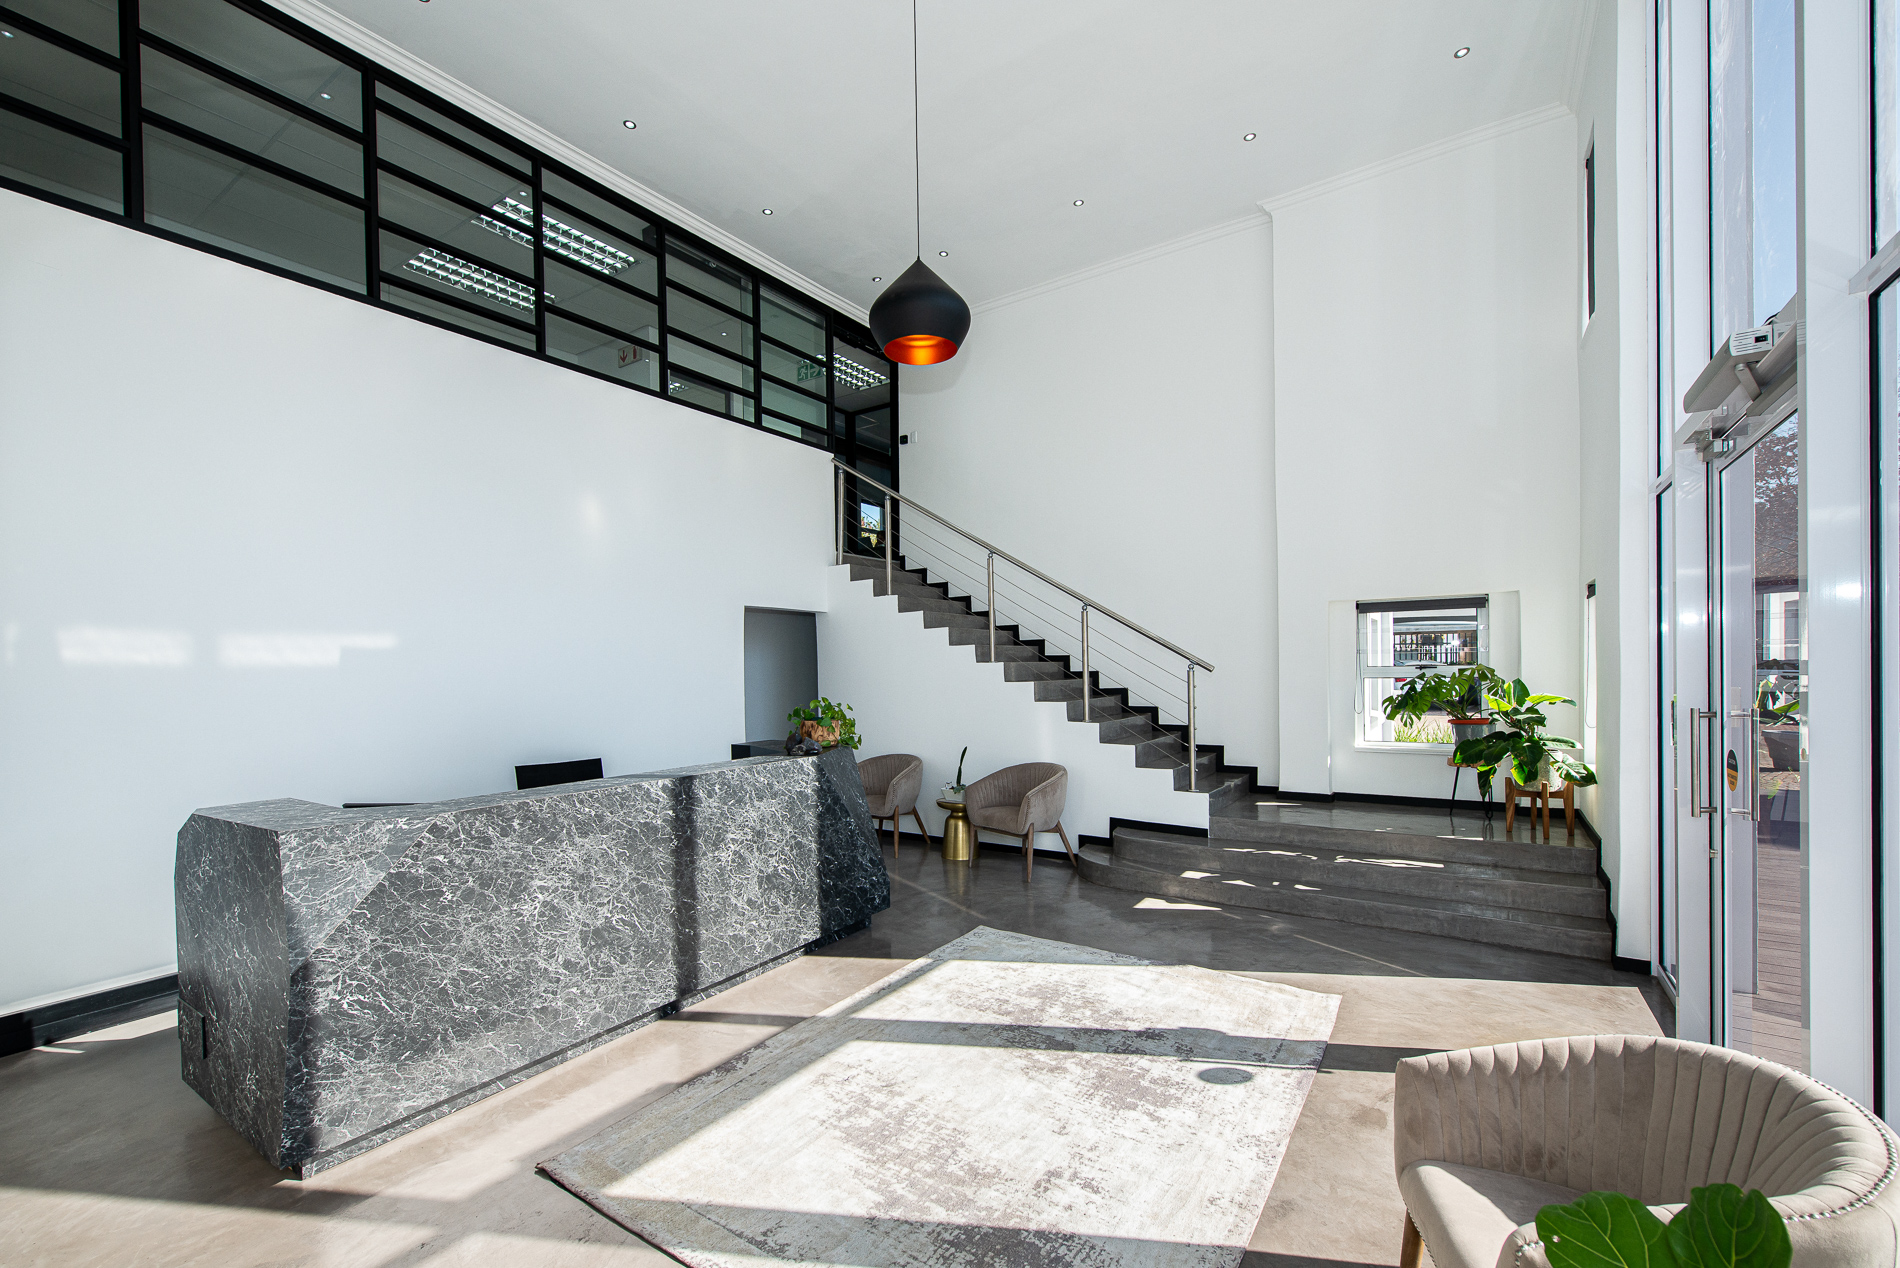 Stratore-TKI-Turnkey-Interiors-Office-Commercial-Work-Place-Interior-Design